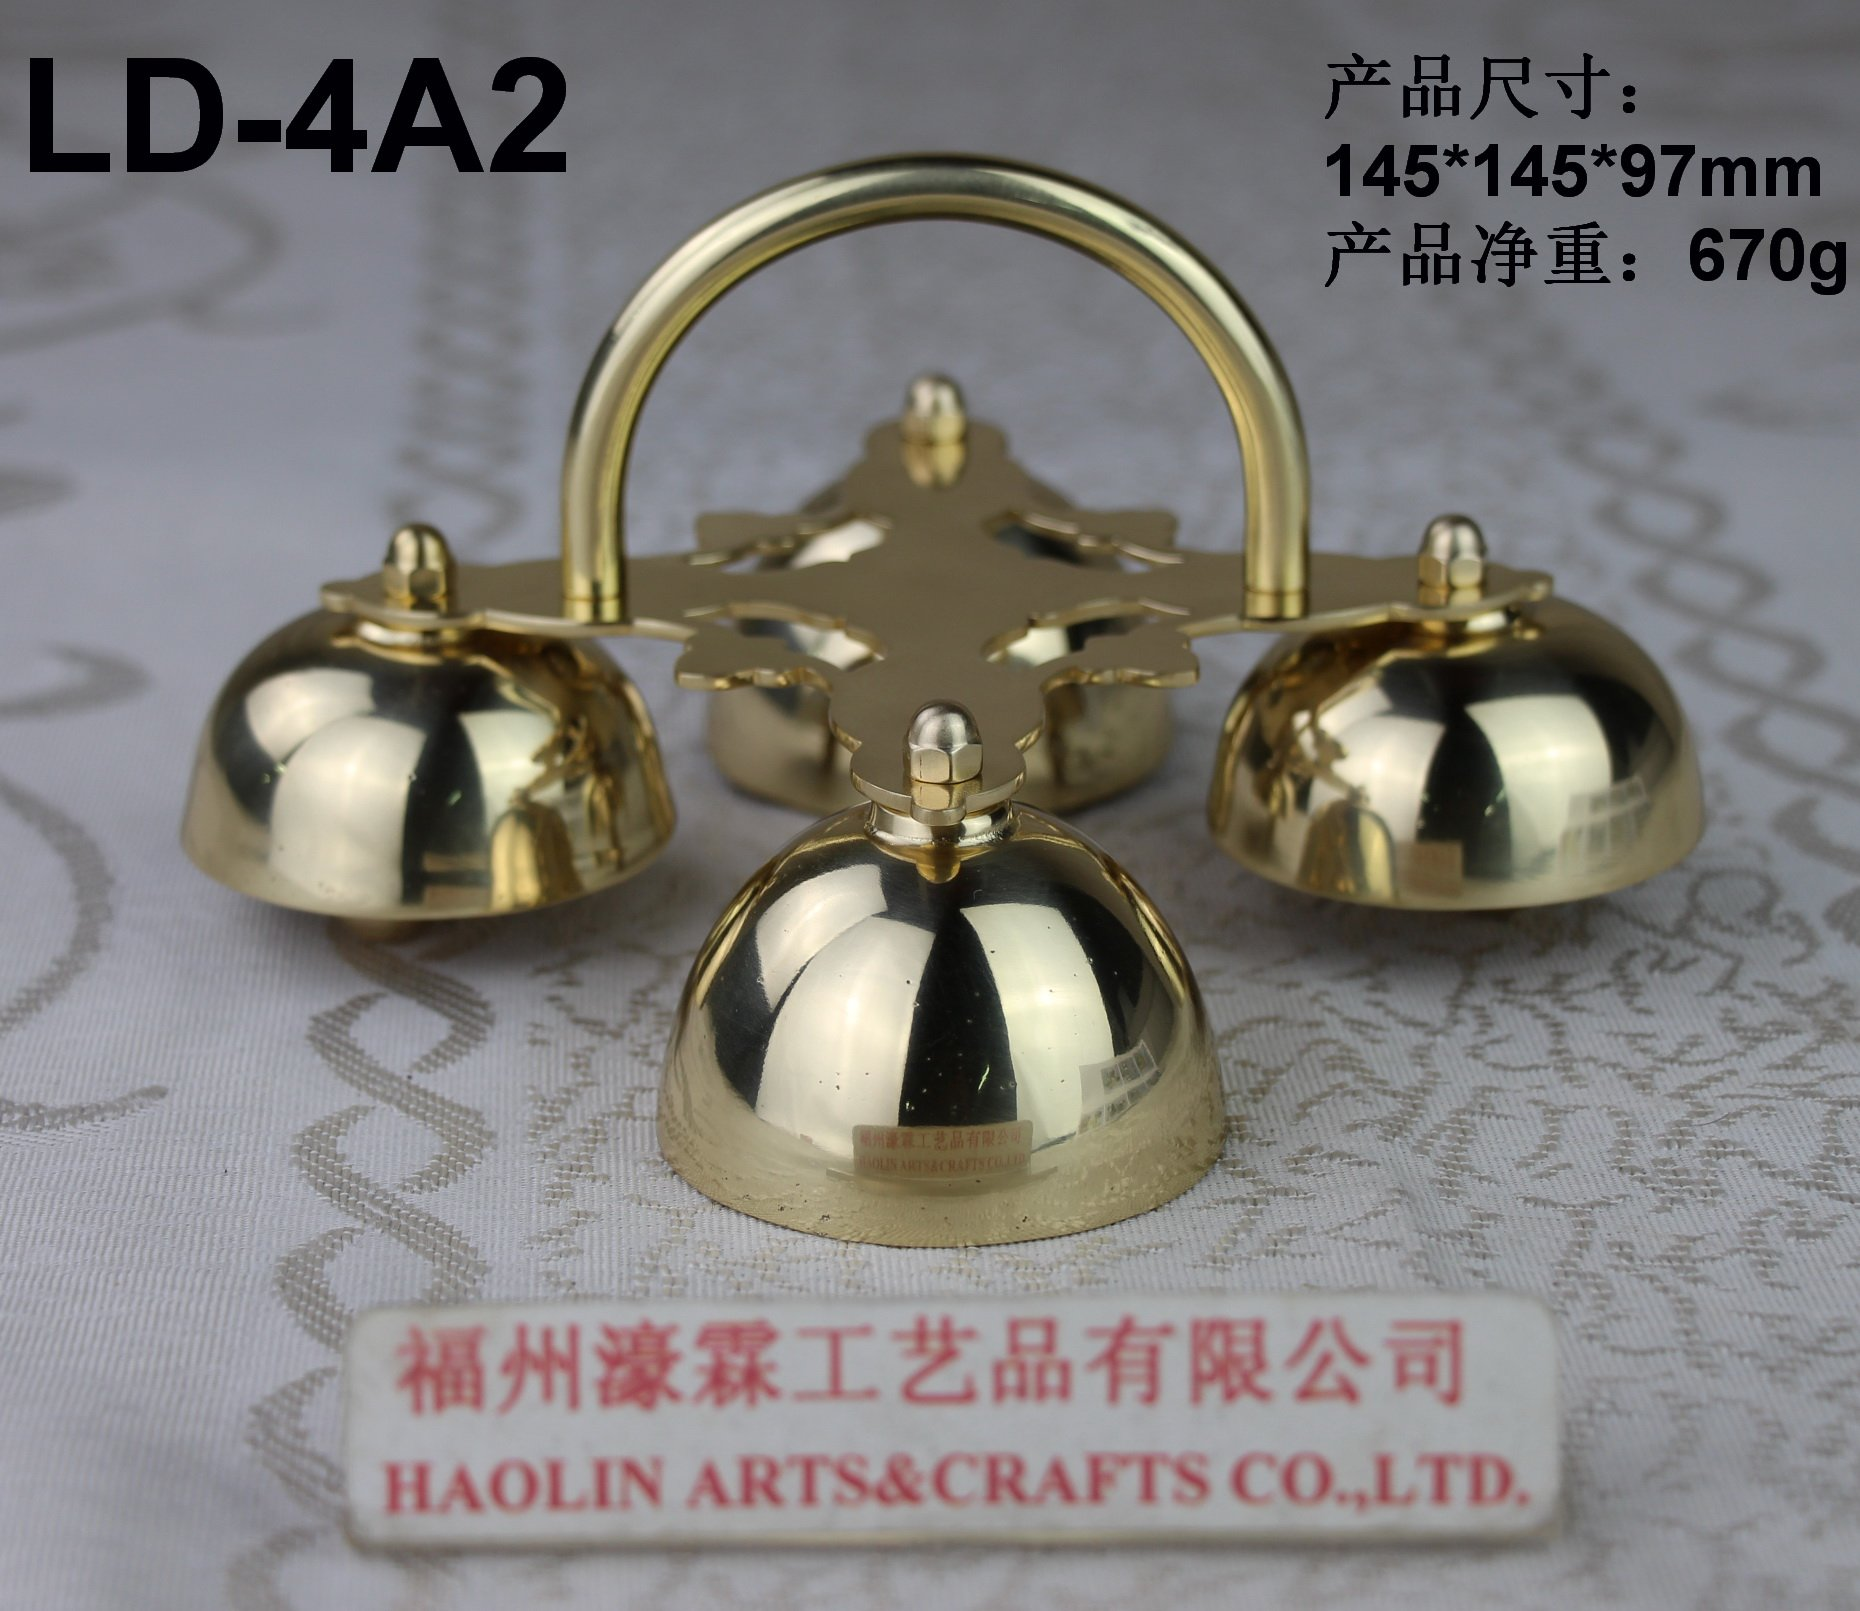 3.8''H Church Altar Brass Bell Unique Design LD-4A2. Our company have 21 kinds of brass bell for your choice